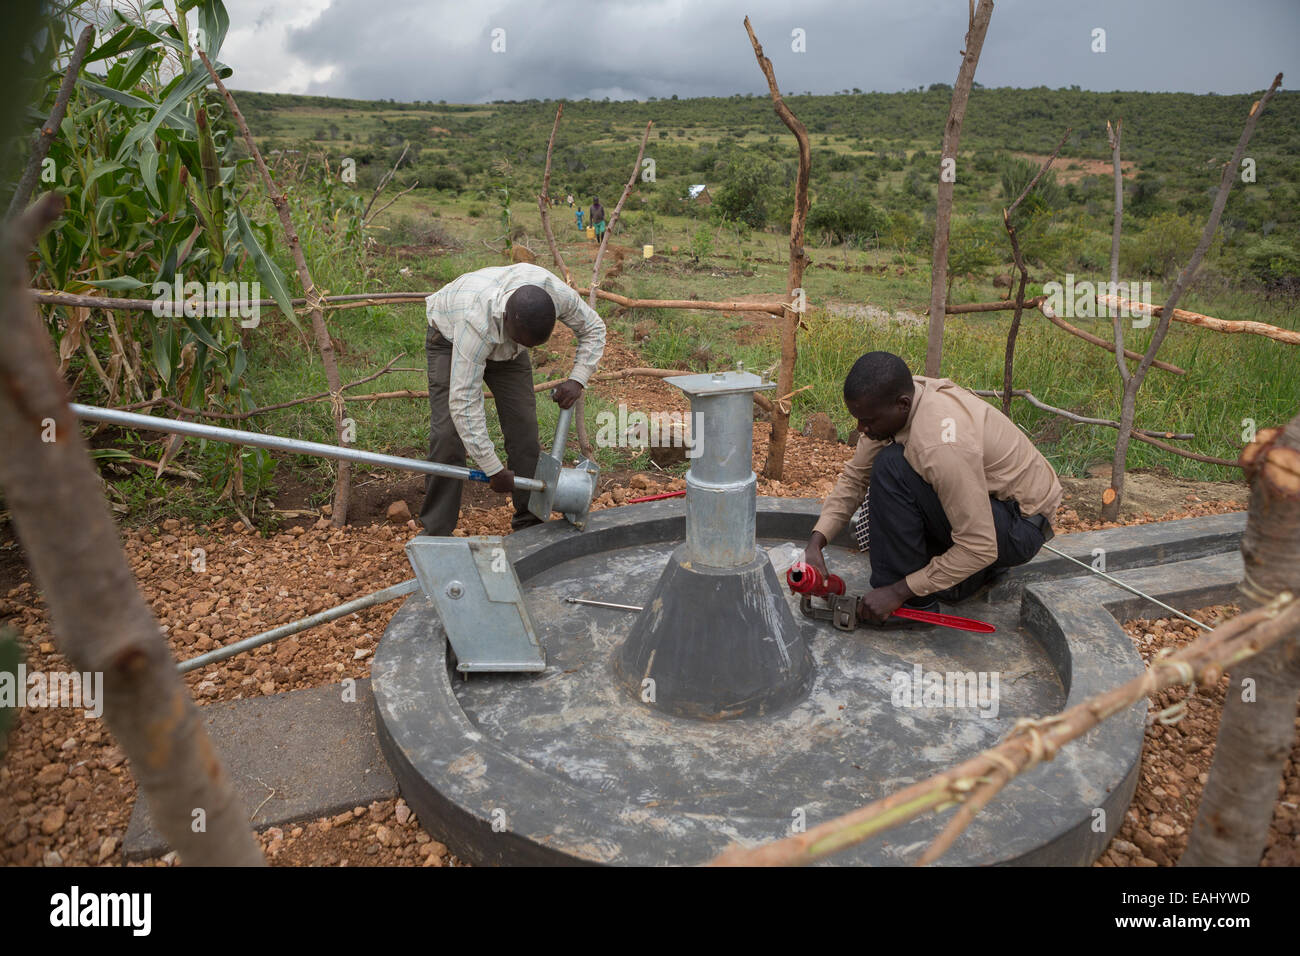 Community members in Sukuroi village, Bukwo District, Uganda work to construct a shallow well in their community. - Stock Image